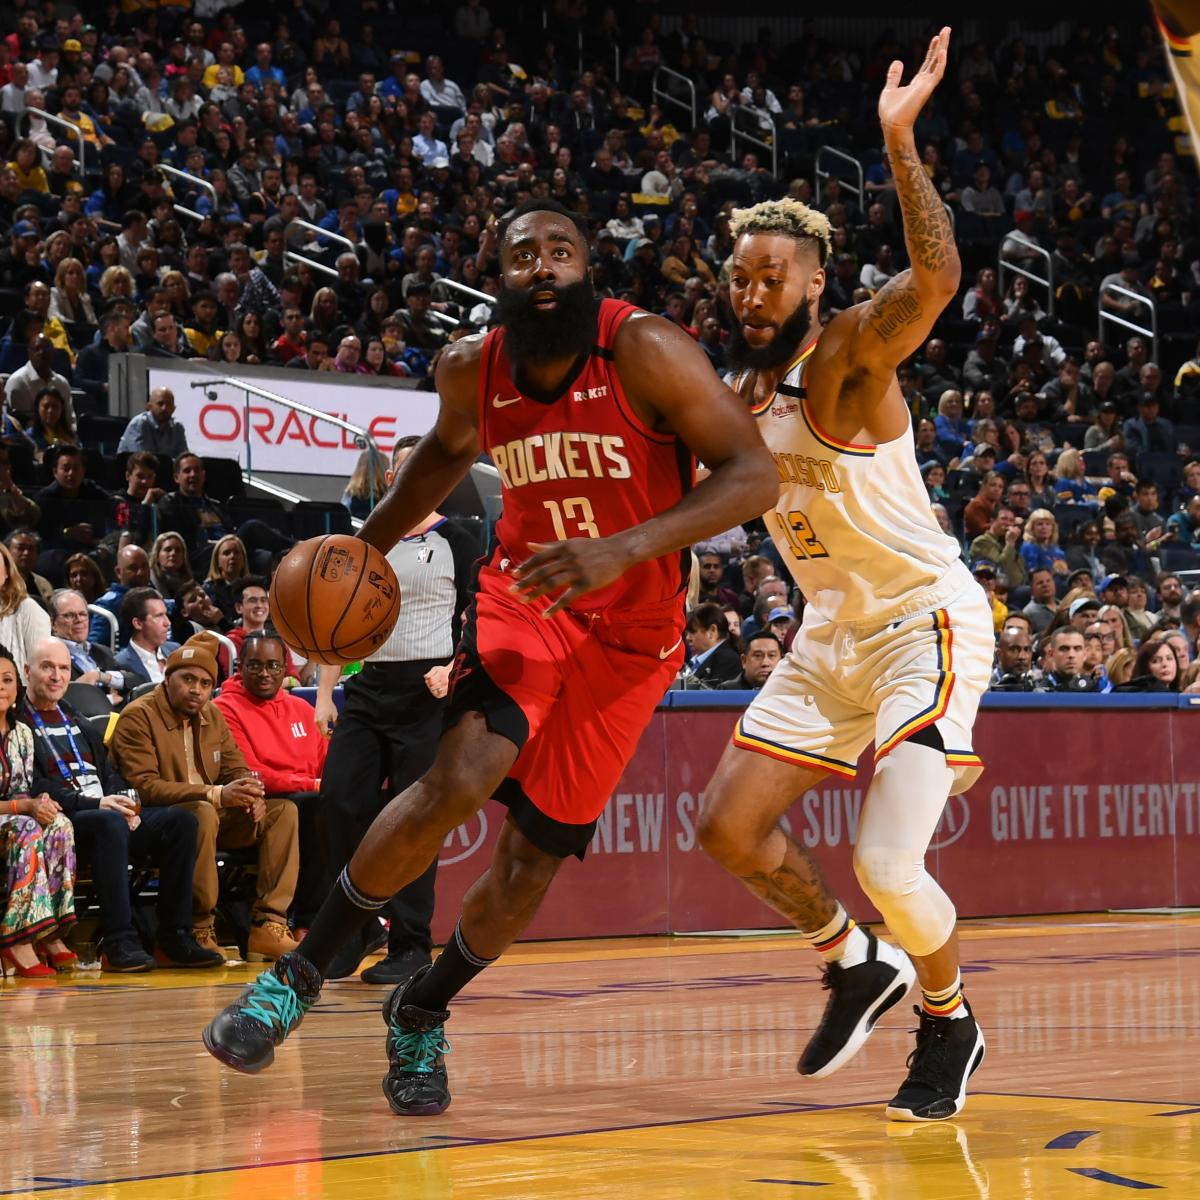 James Harden, Russell Westbrook Lead Rockets to 135-105 Blowout over Warriors